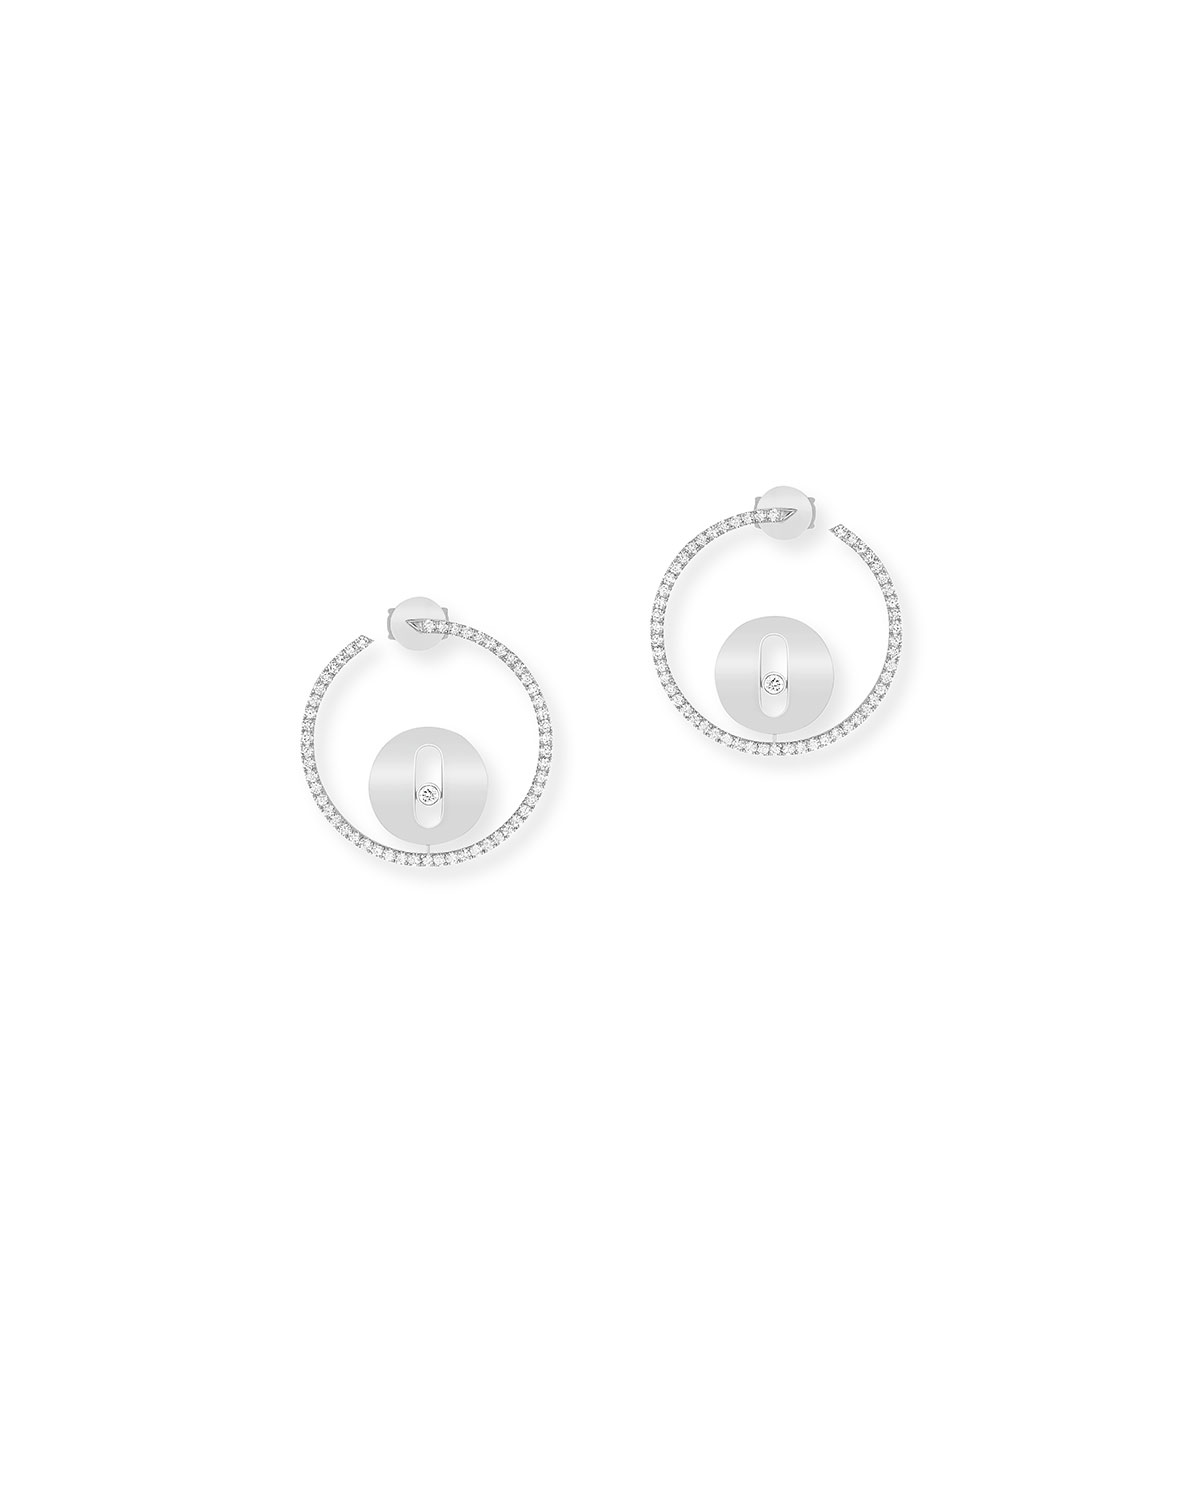 Lucky Move PM Diamond Earrings in White Gold